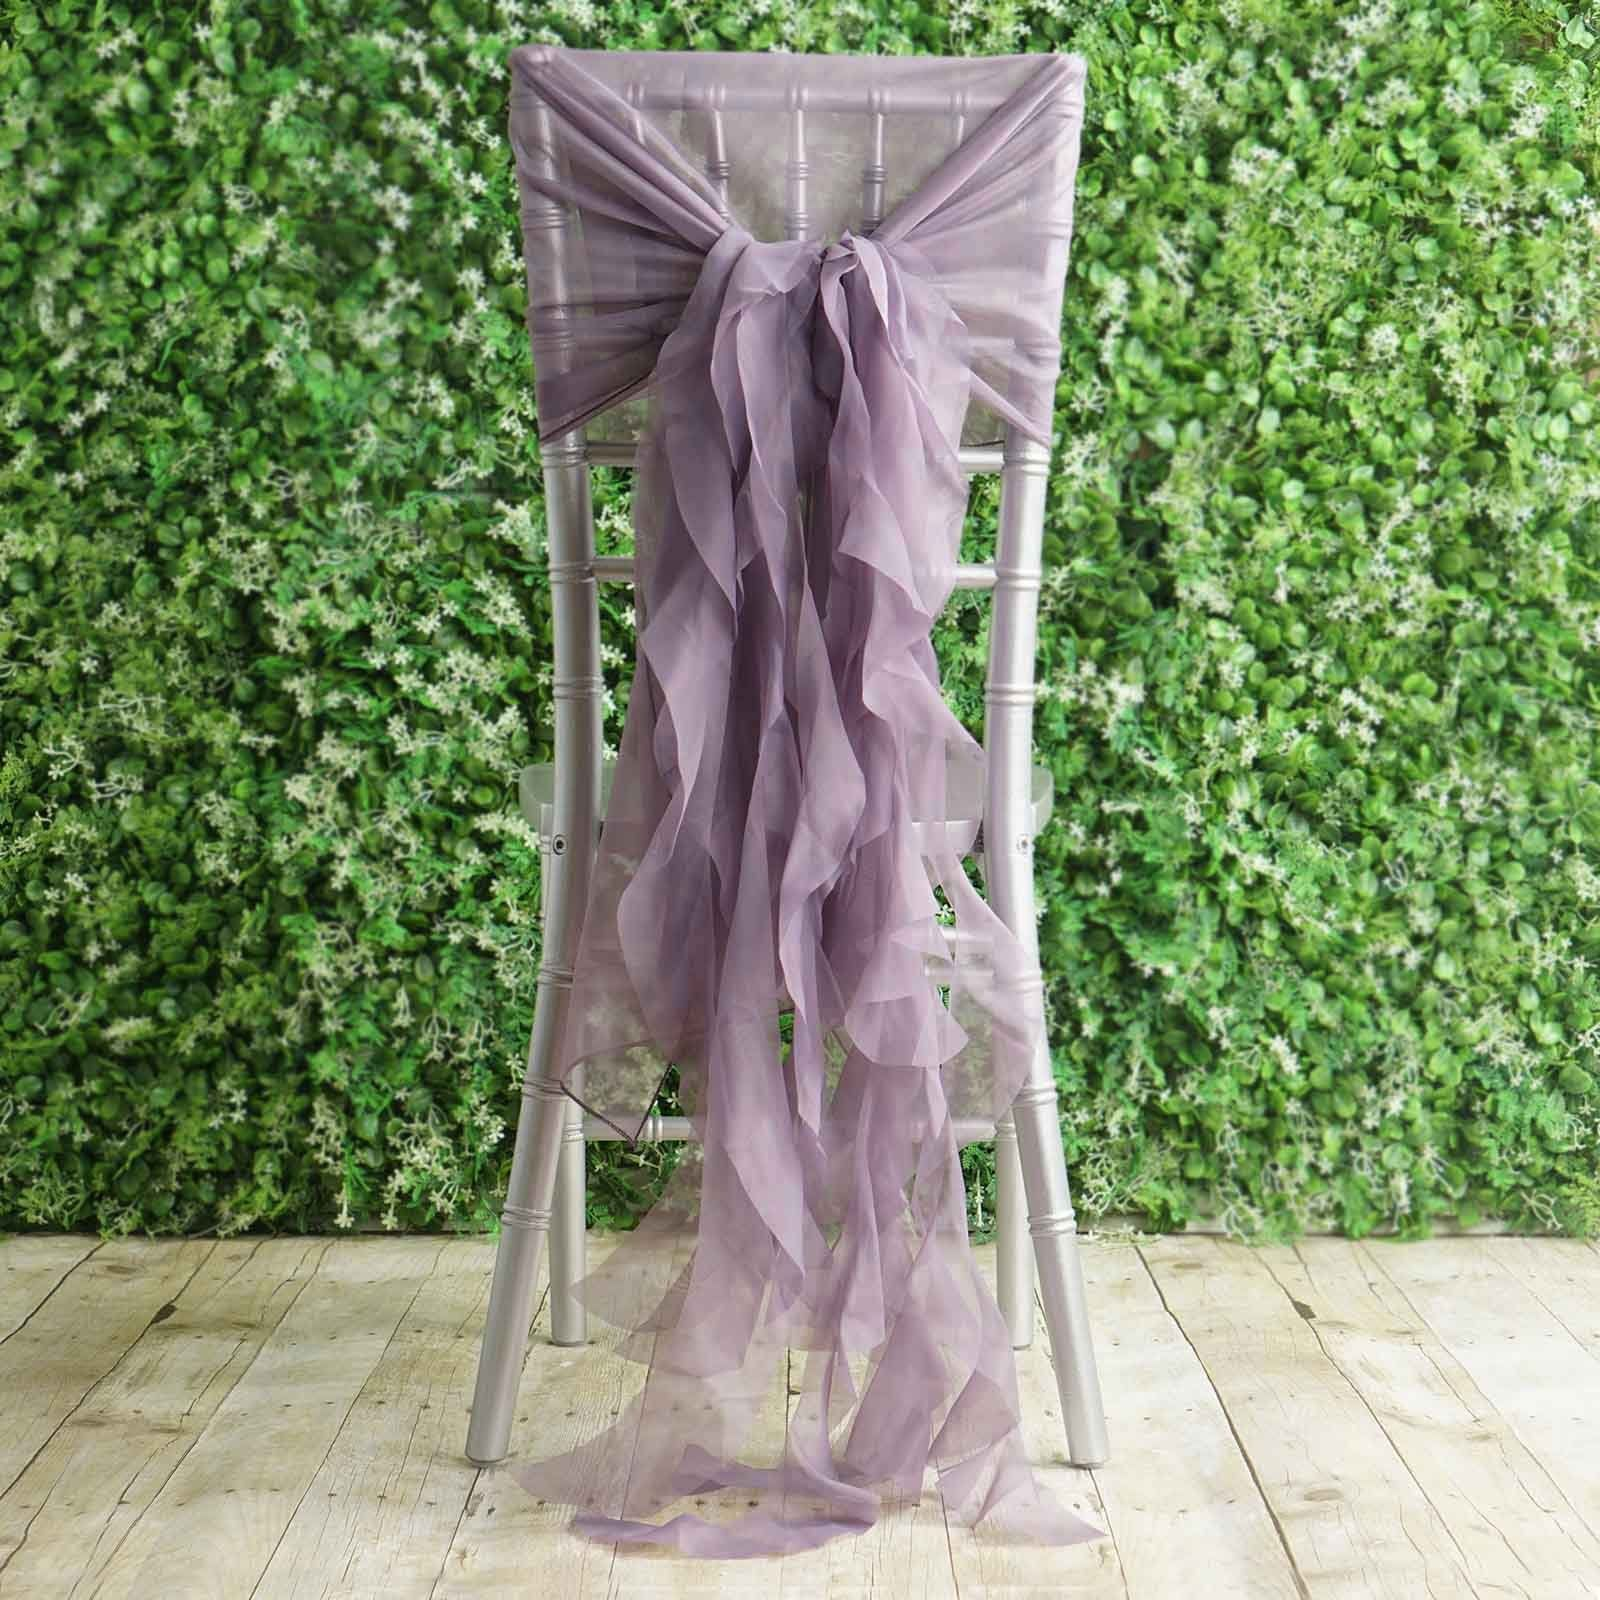 1 Set Amethyst Violet Chiffon Hoods With Curly Willow